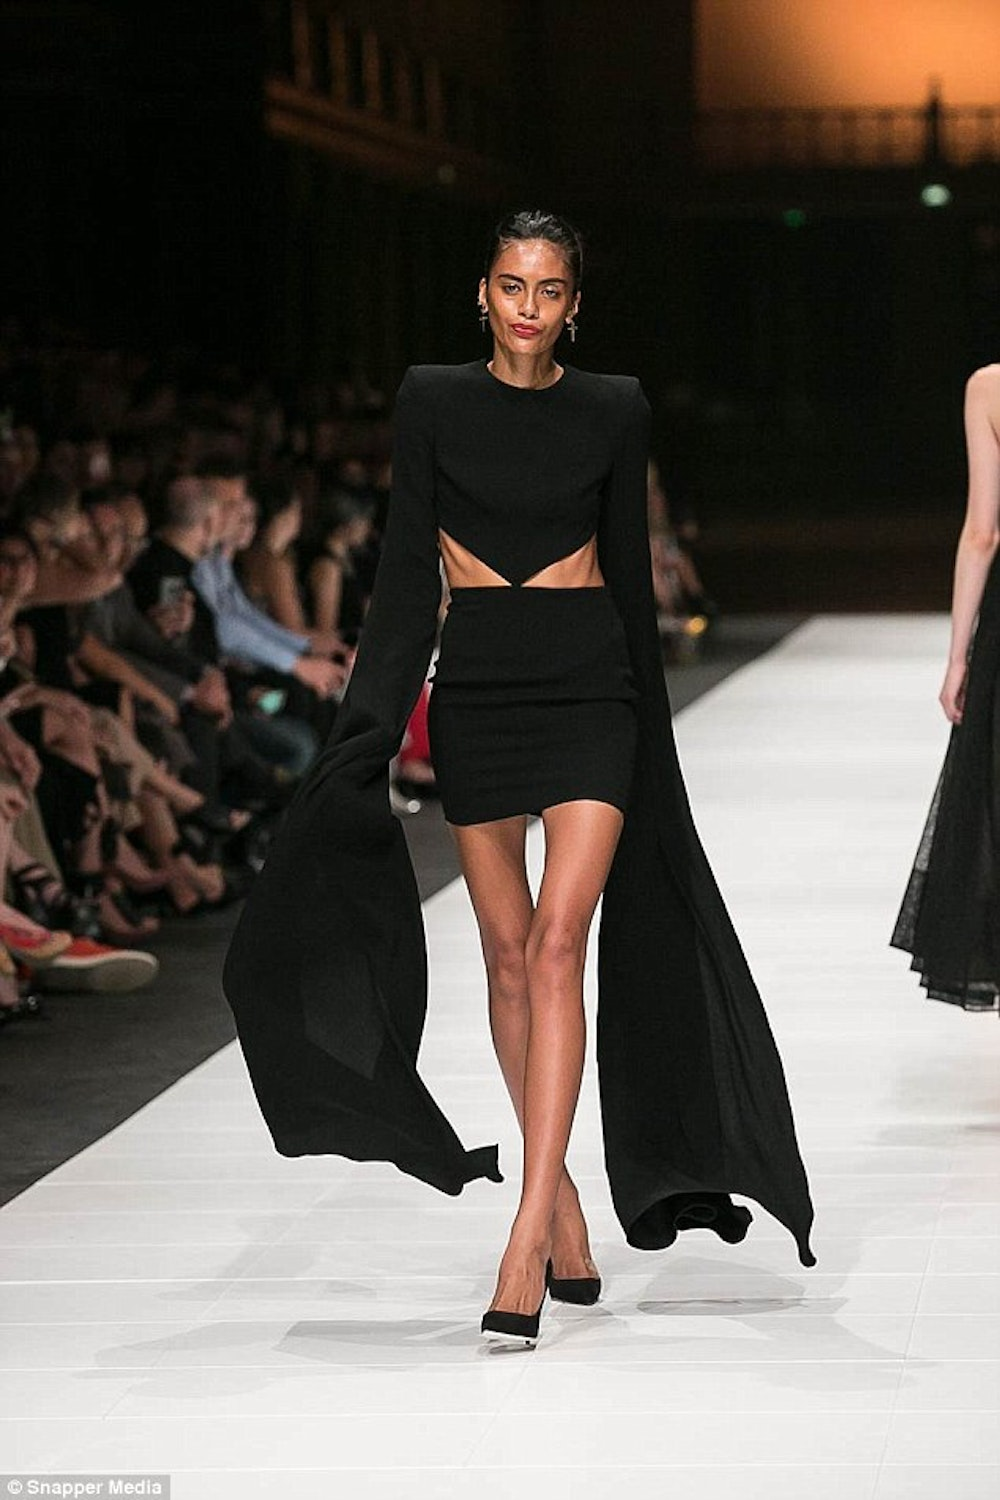 How To Skeletal Model Holly Moore Walks The Runway In Melbourne In A Black  Dress With Ribs Showing